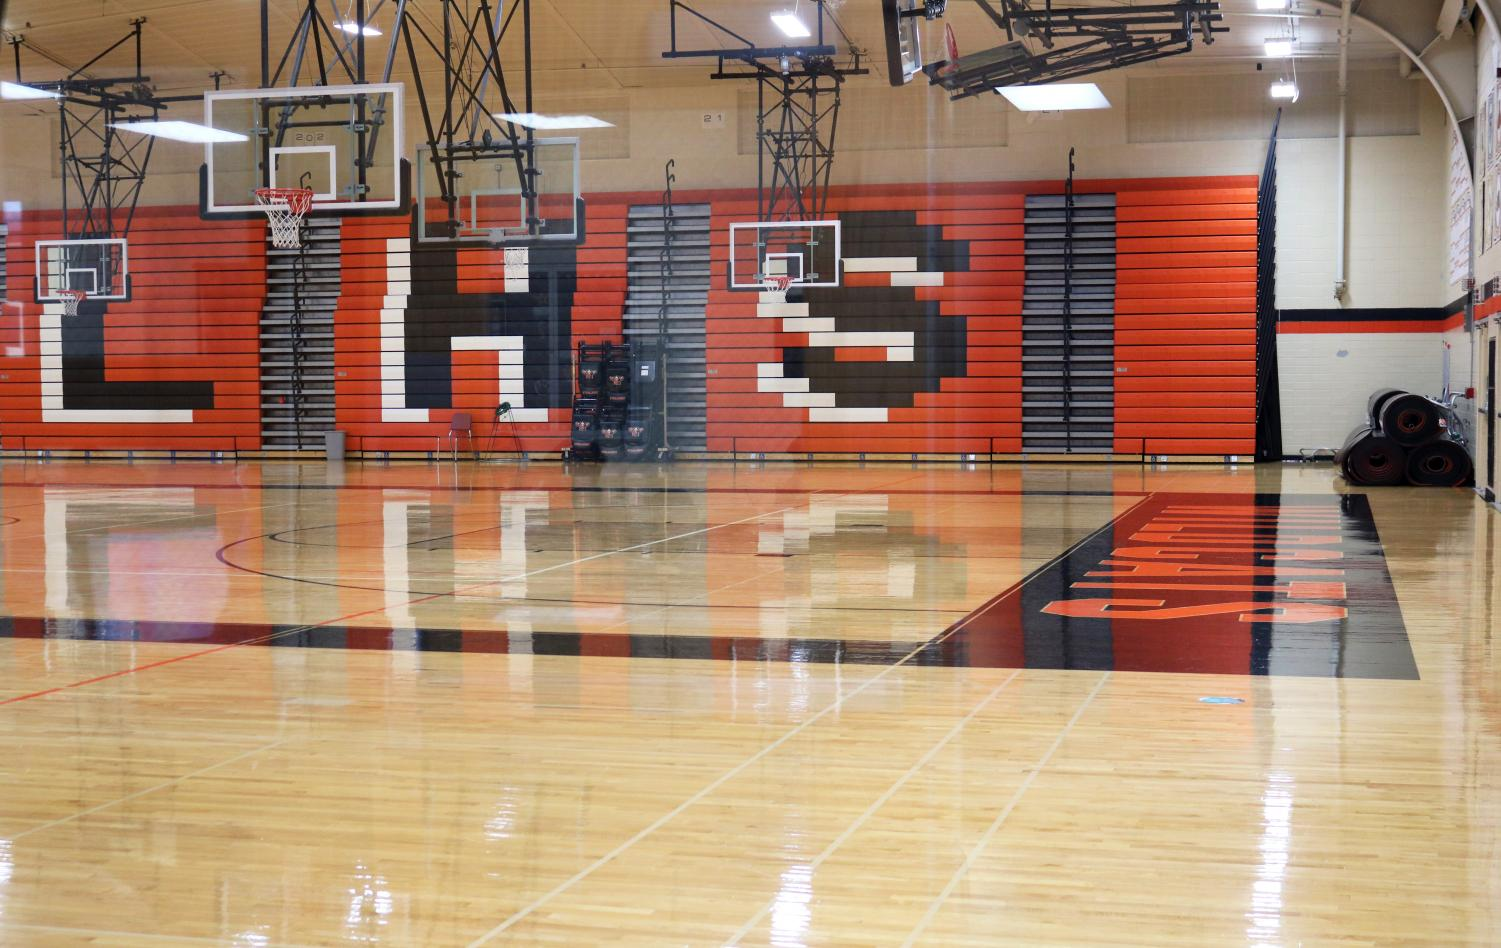 The main gym was closed for a second time after an inspection held on Friday, Nov. 15, where lead paint was found in specks falling from the ceiling. The closing of the gym affected many if the winter sports practices and events.